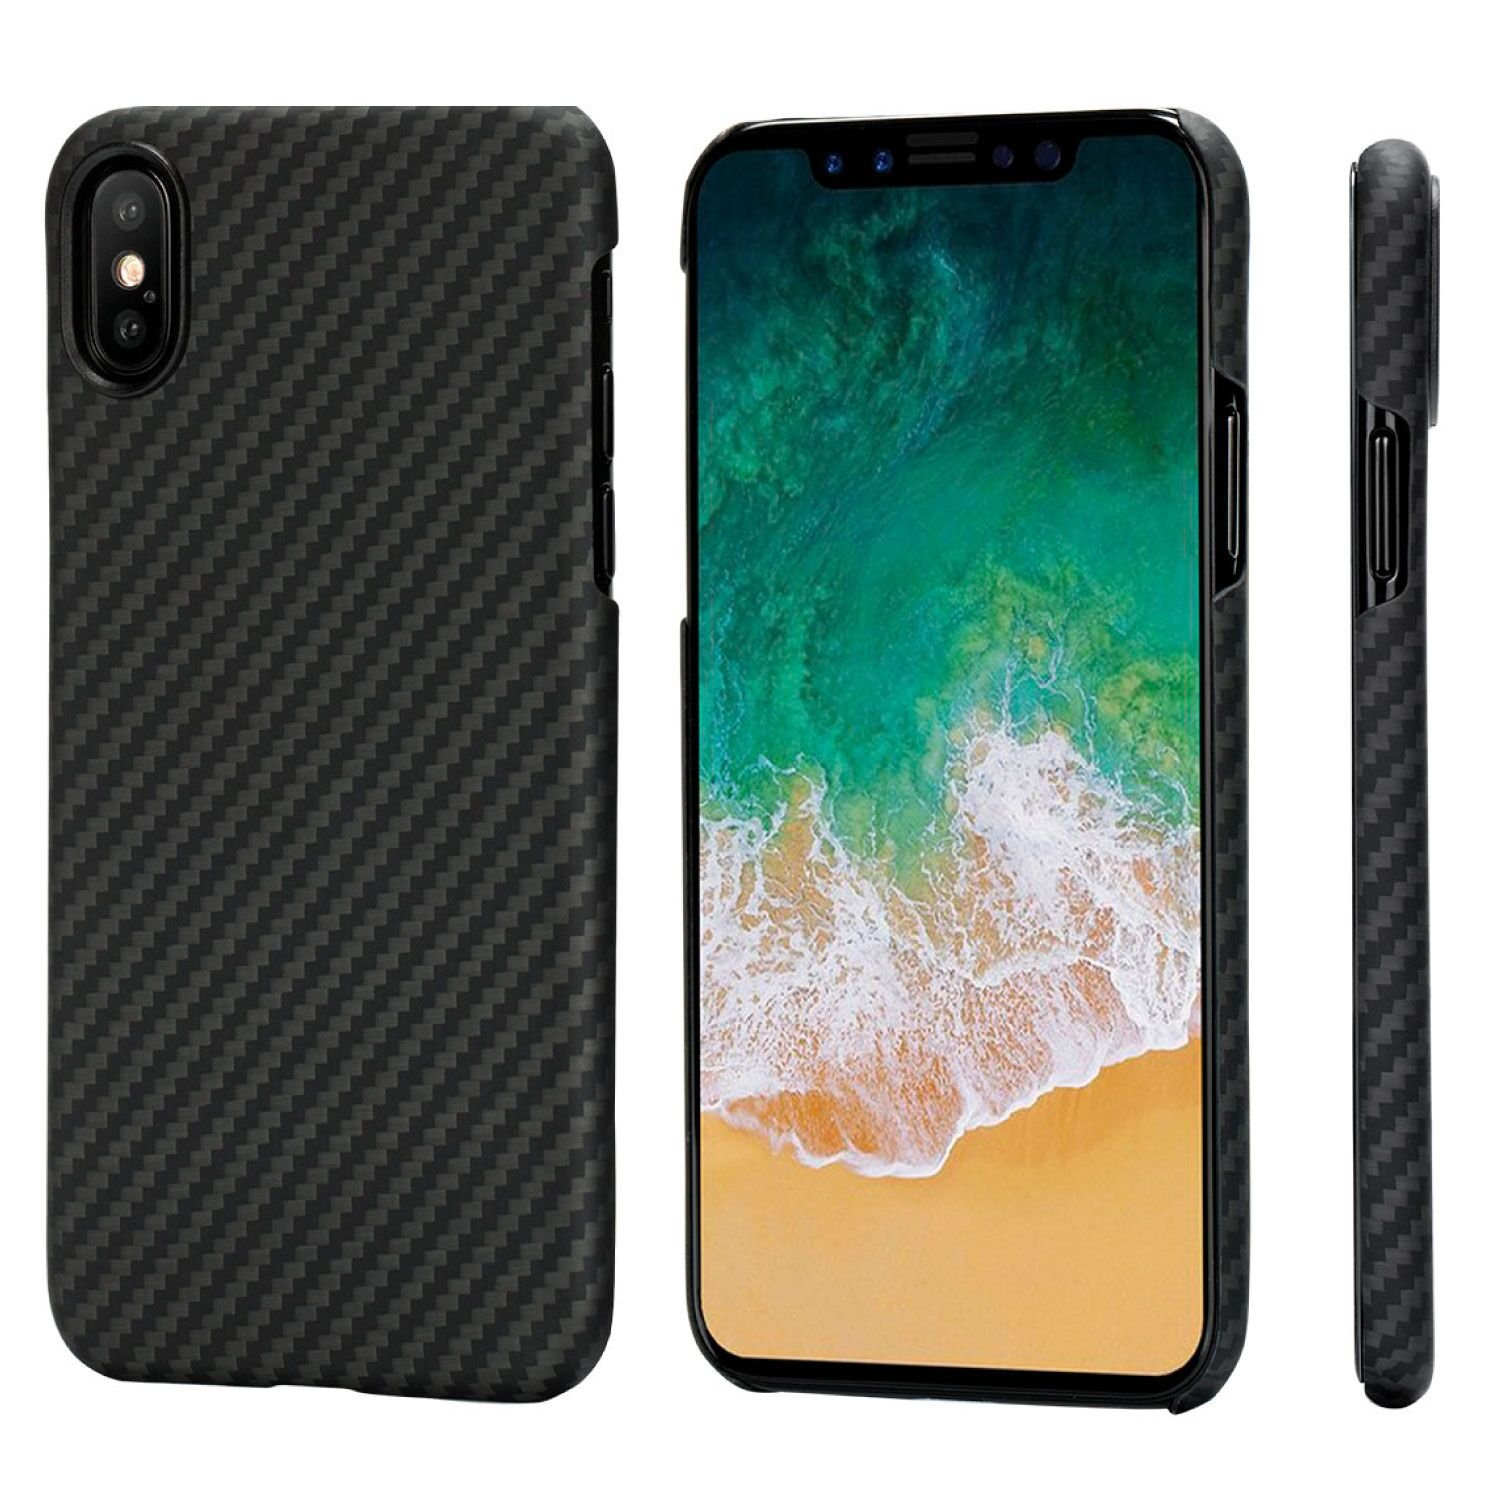 PITAKA Slim Case Compatible with iPhone X 5.8'', MagCase Aramid Fiber [Real Body Armor Material] Phone Case,Minimalist Strongest Durable Snugly Fit Snap-on Case - Black/Grey(Twill)